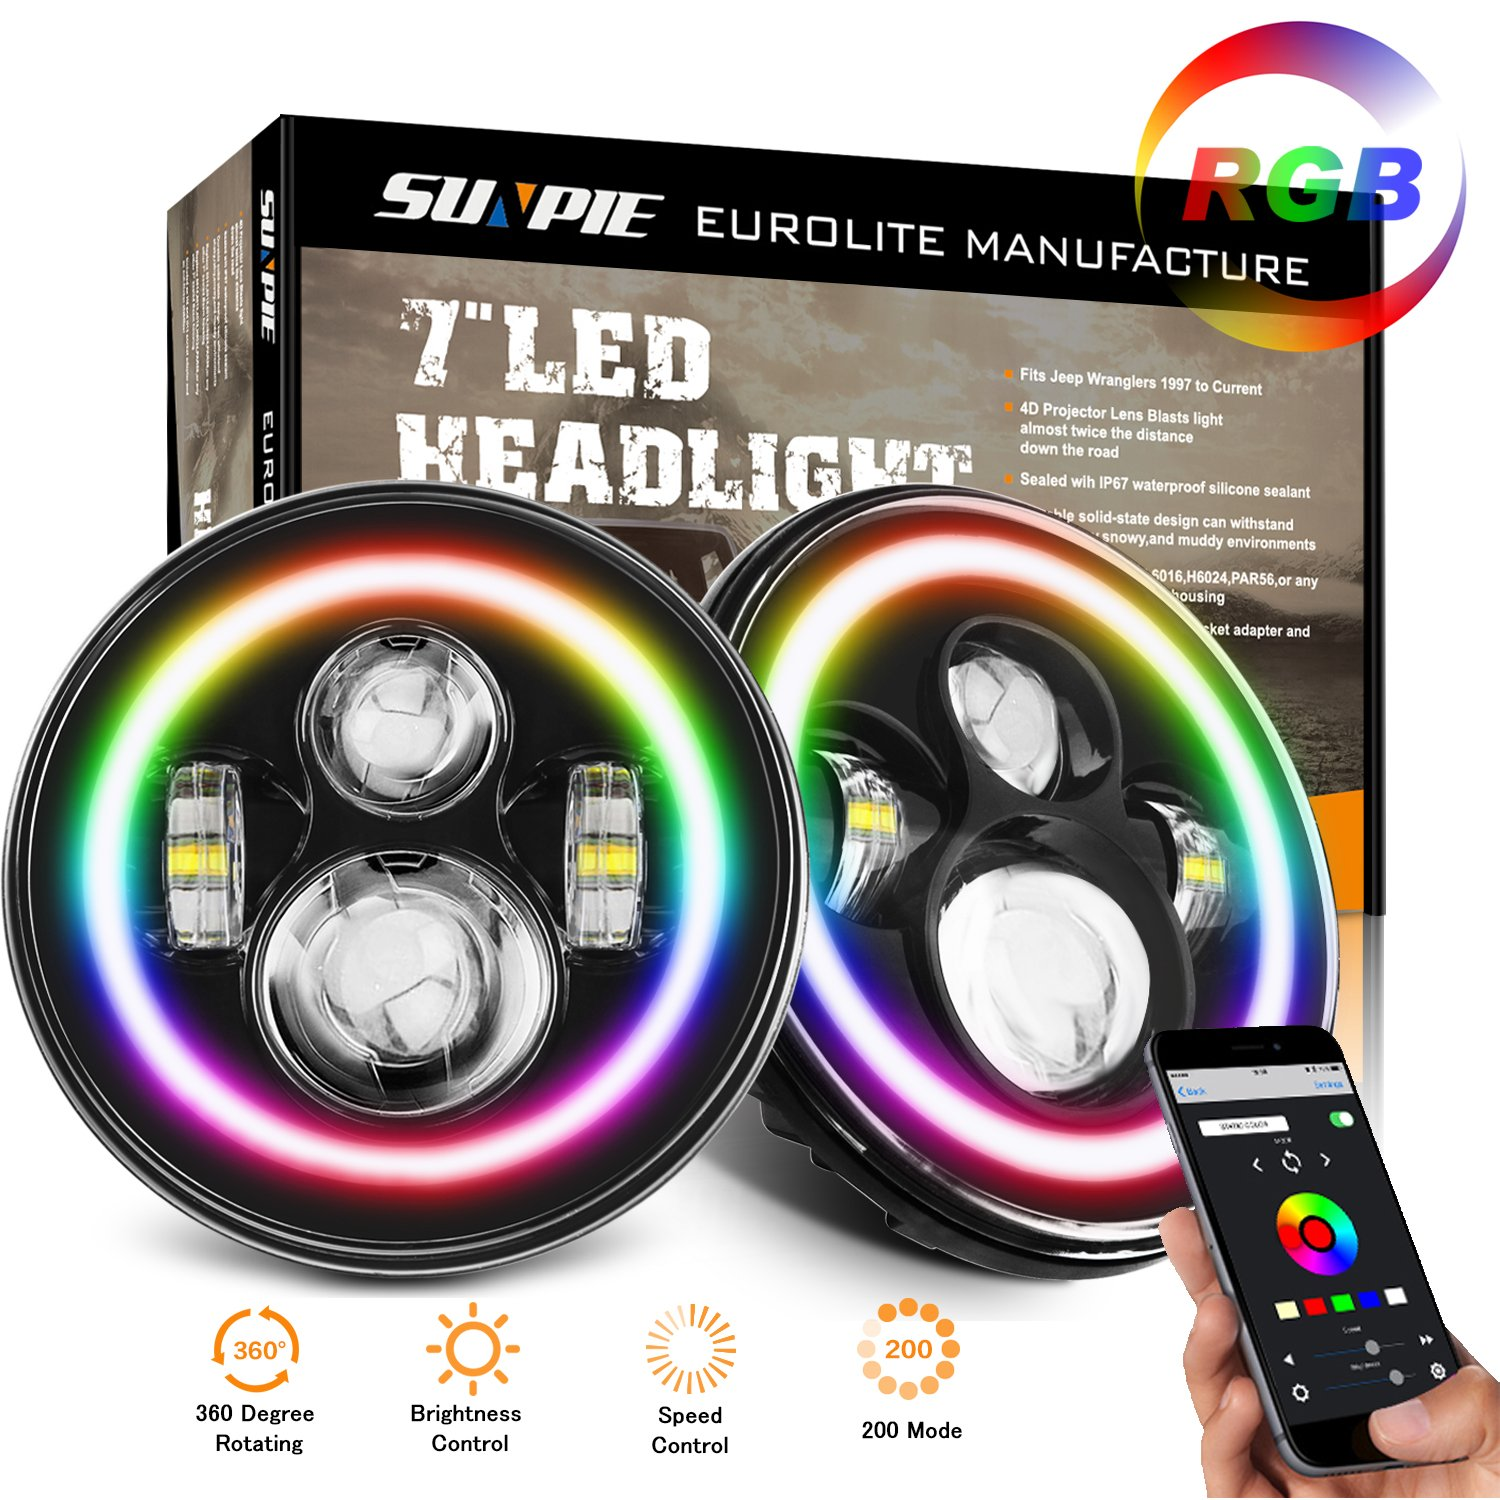 7'' LED Headlight Lamp with Rotating RGB Halo Speech Brightness adjustment Bluetooth Remote for 1997~2017 Jeep Wrangler JK LJ CJ Hummer H1 H2 Headlamp DRL Driving Light Bulb by SUNPIE